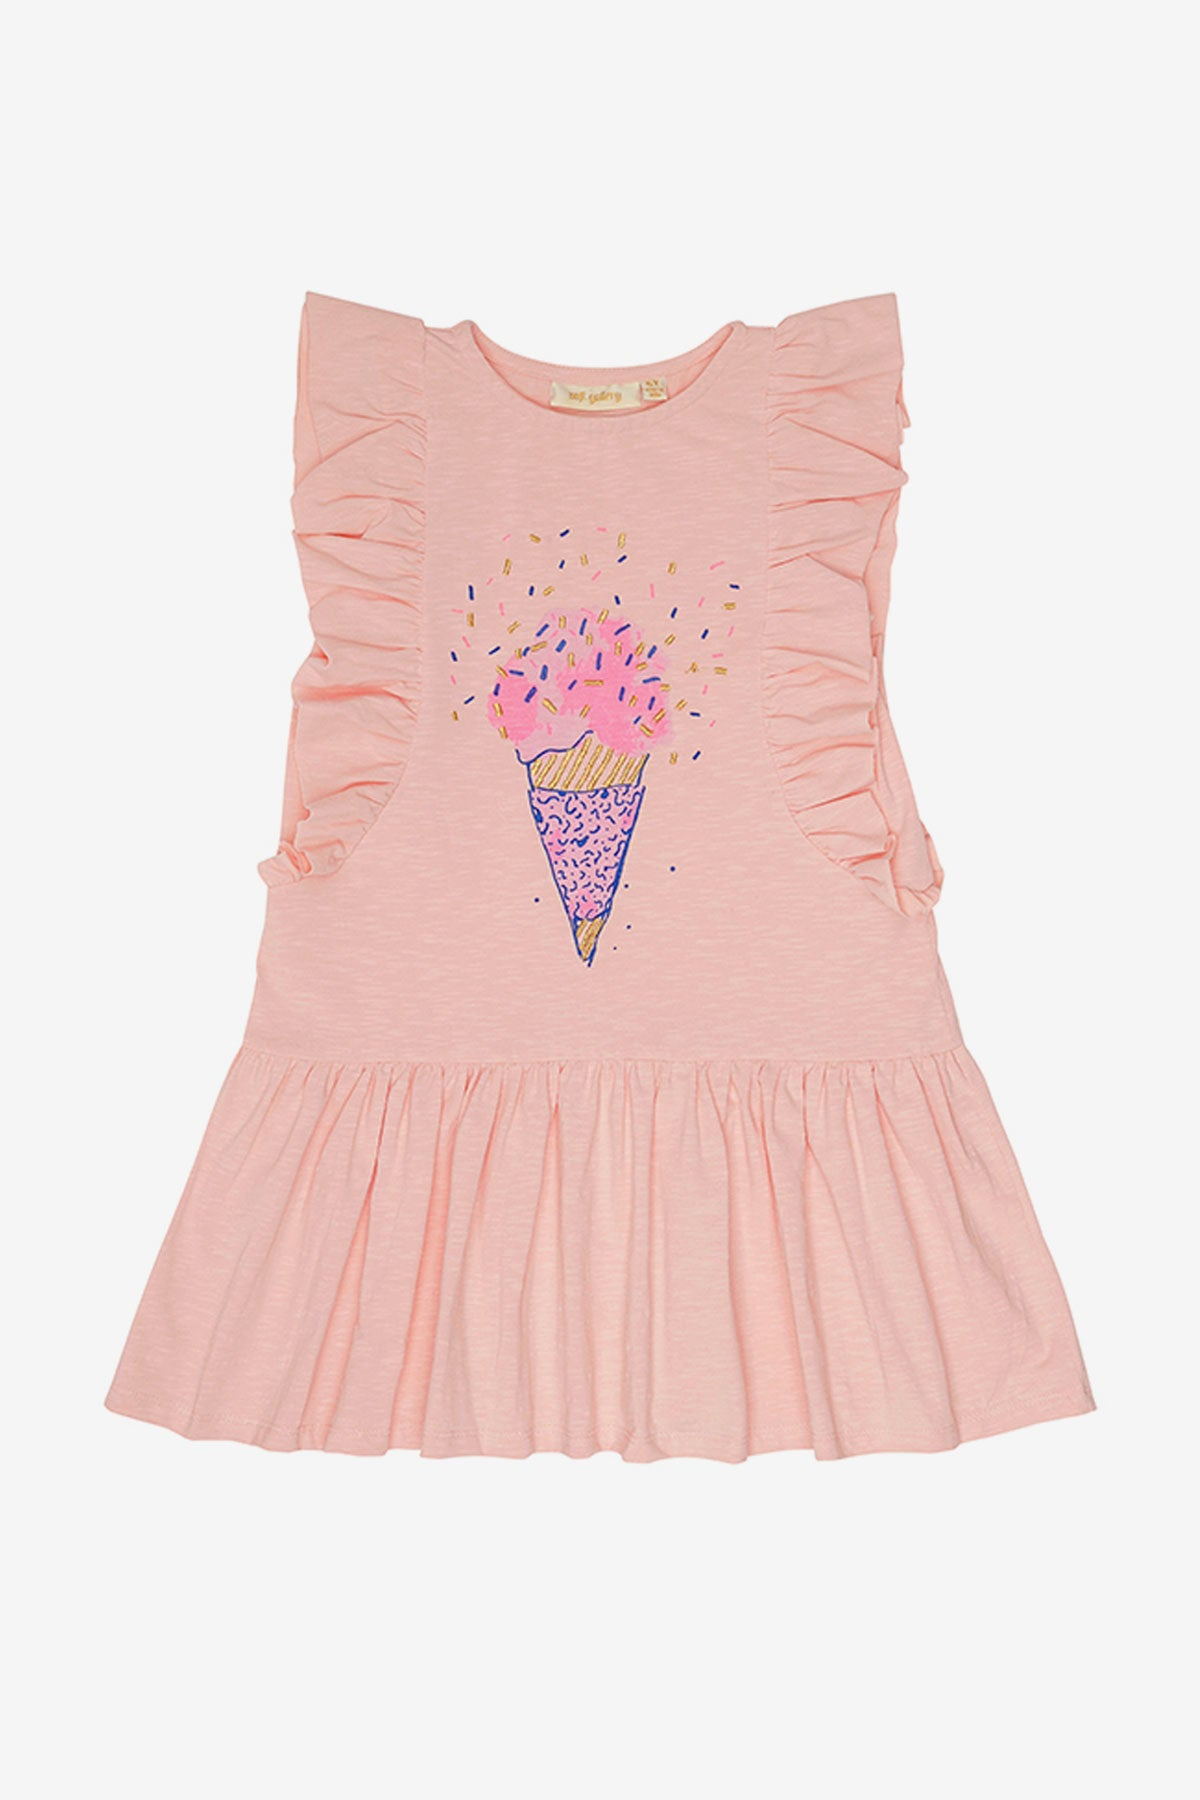 Soft Gallery Alberte Gelato Dress